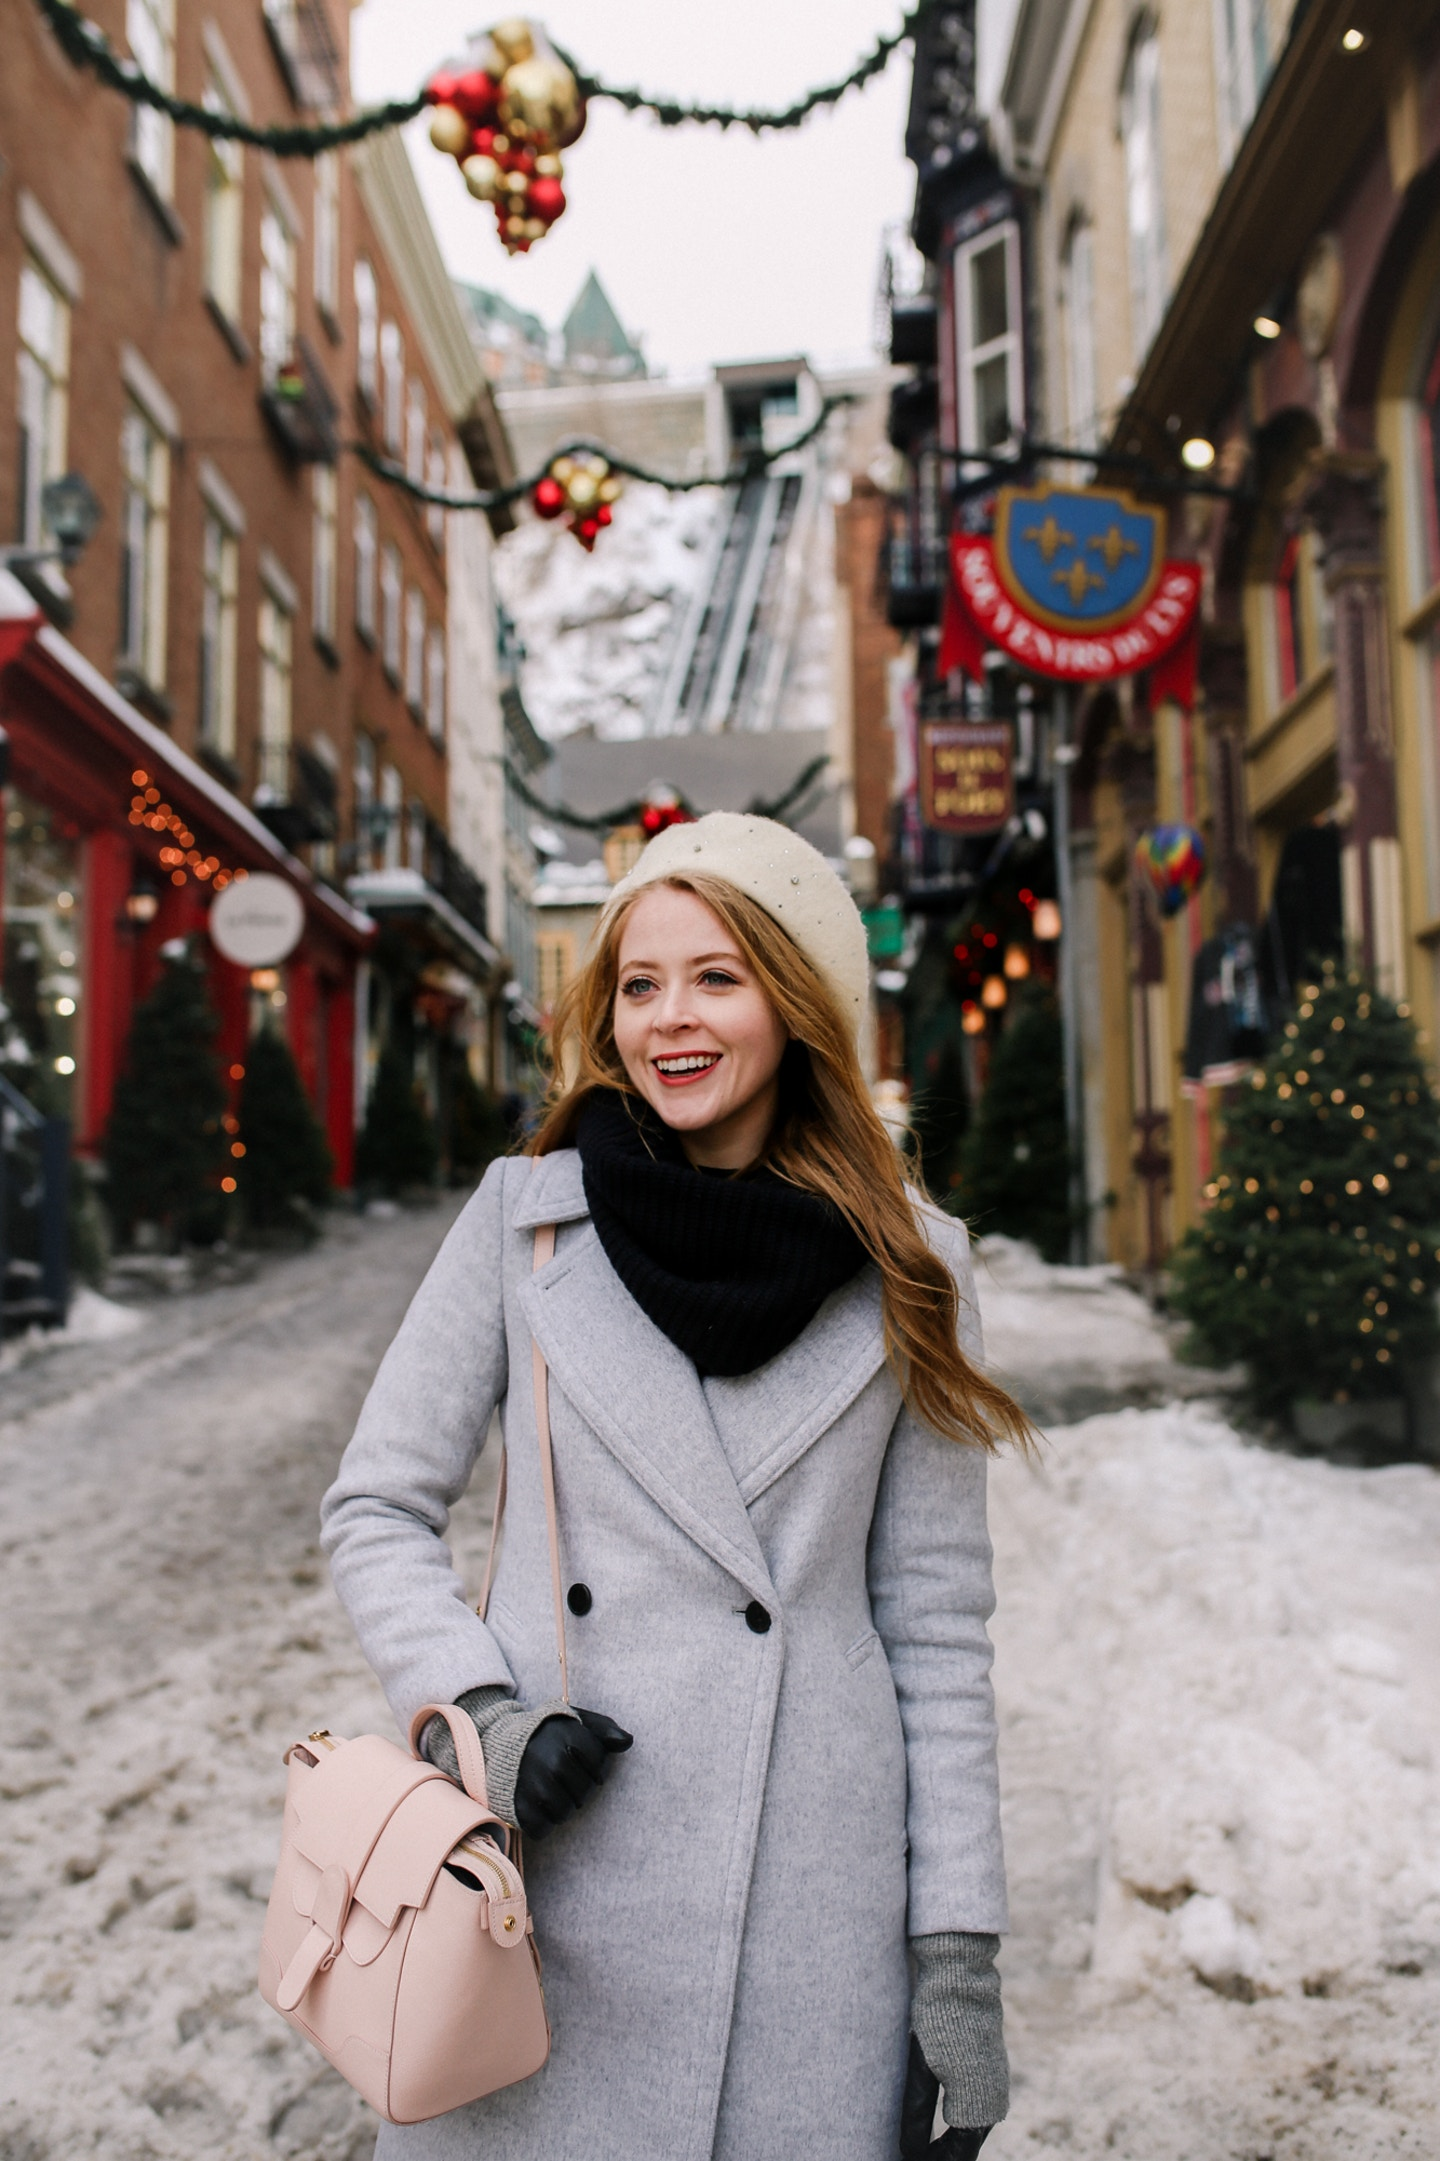 Top 10 things to do in Quebec City in a winter weekend. This romantic city feels European with cobblestone streets, festive decor and old stone buildings.